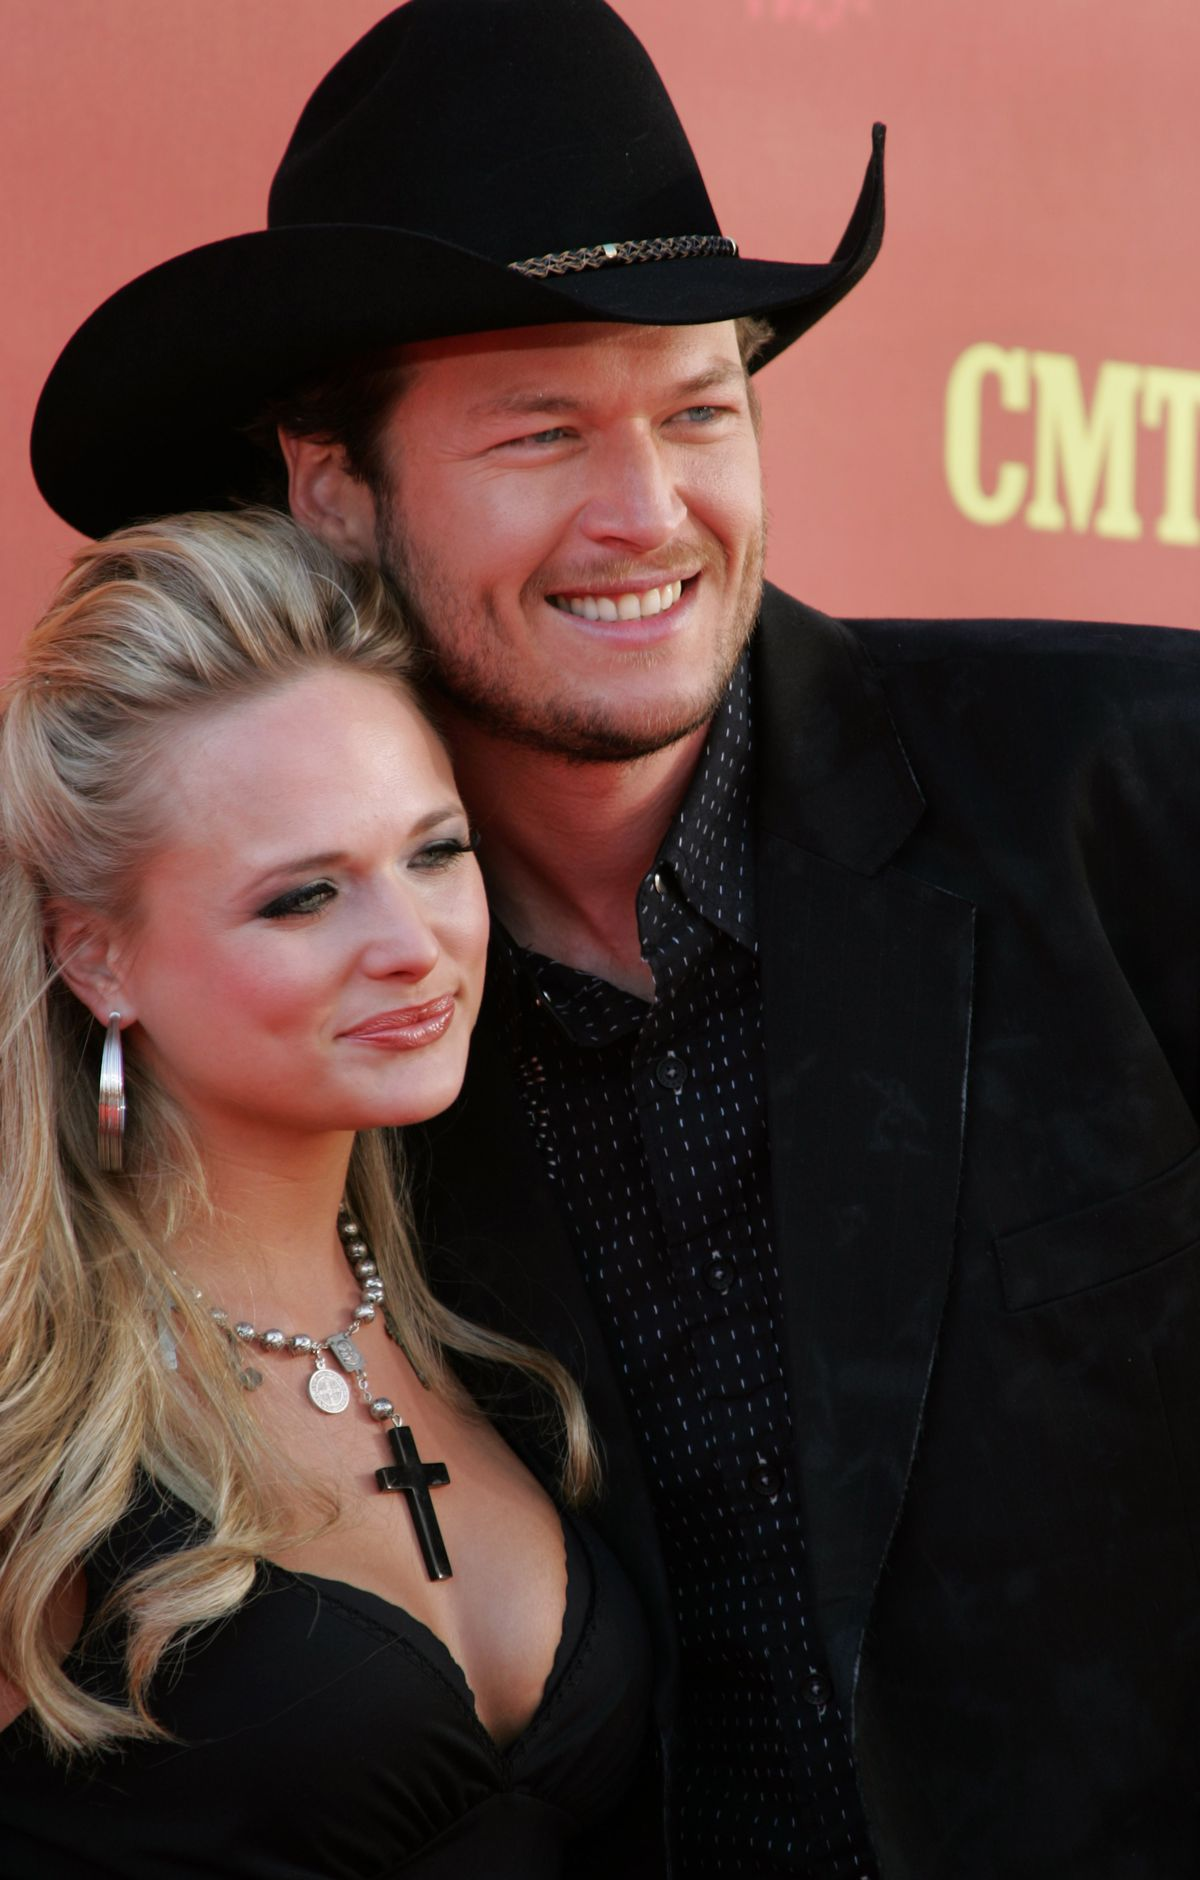 Miranda Lambert and Blake Shelton at the The Curb Event Center at Belmont University in Nashville, Tennessee (Photo by Tony R. Phipps/WireImage)